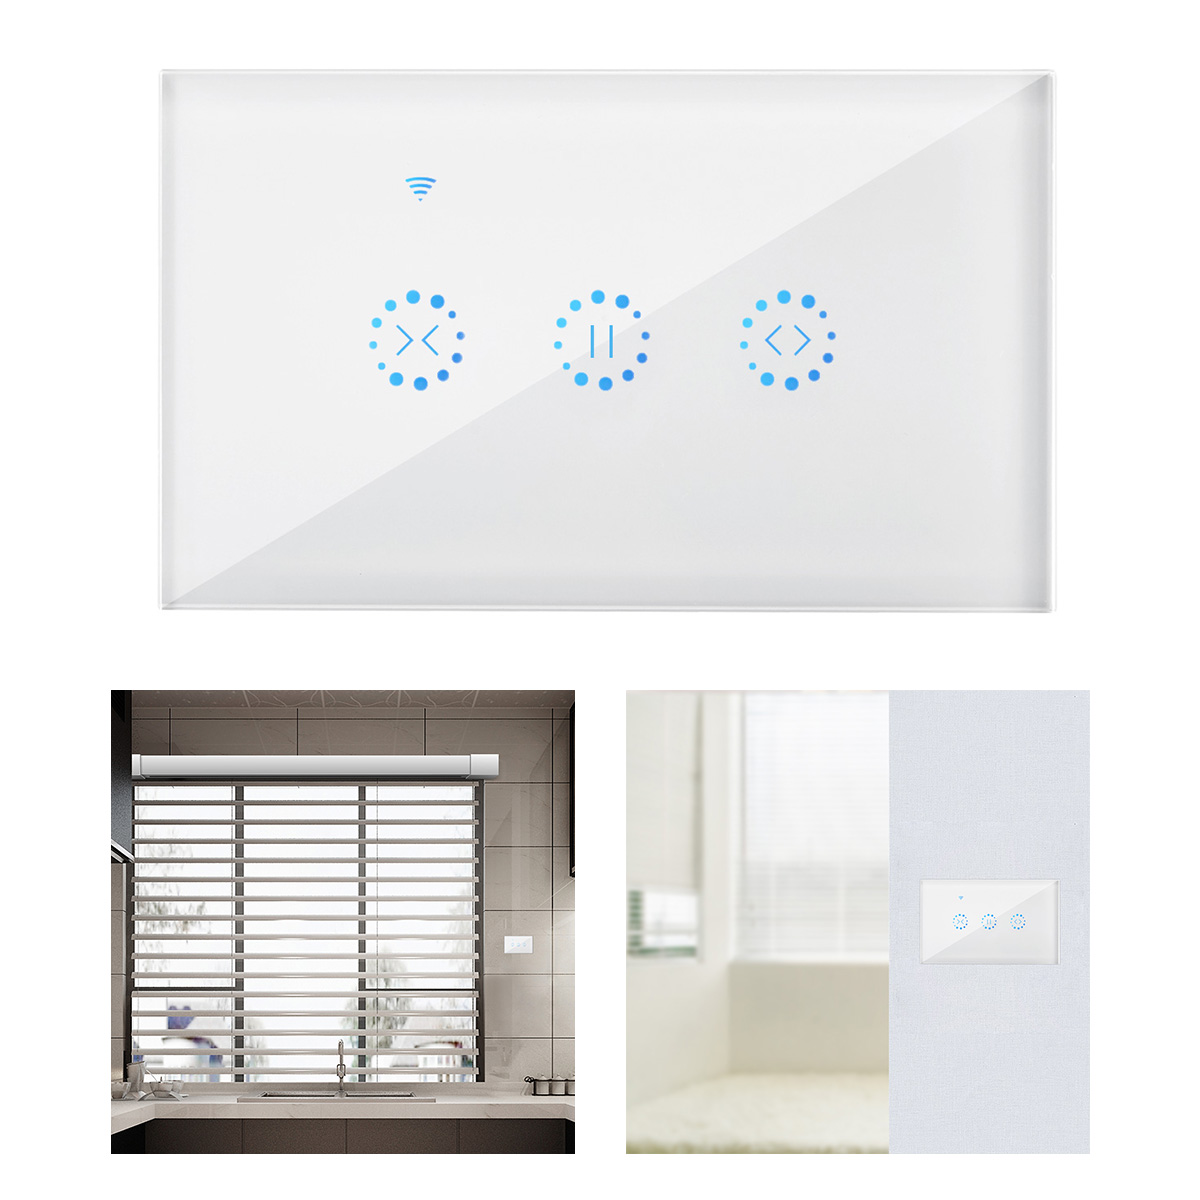 US $15 26 36% OFF|Ewelink smart curtain motor Electrical Blinds WiFi Switch  Touch APP Voice Control by Alexa Echo Google Home AC 110 V 220V EU/US-in